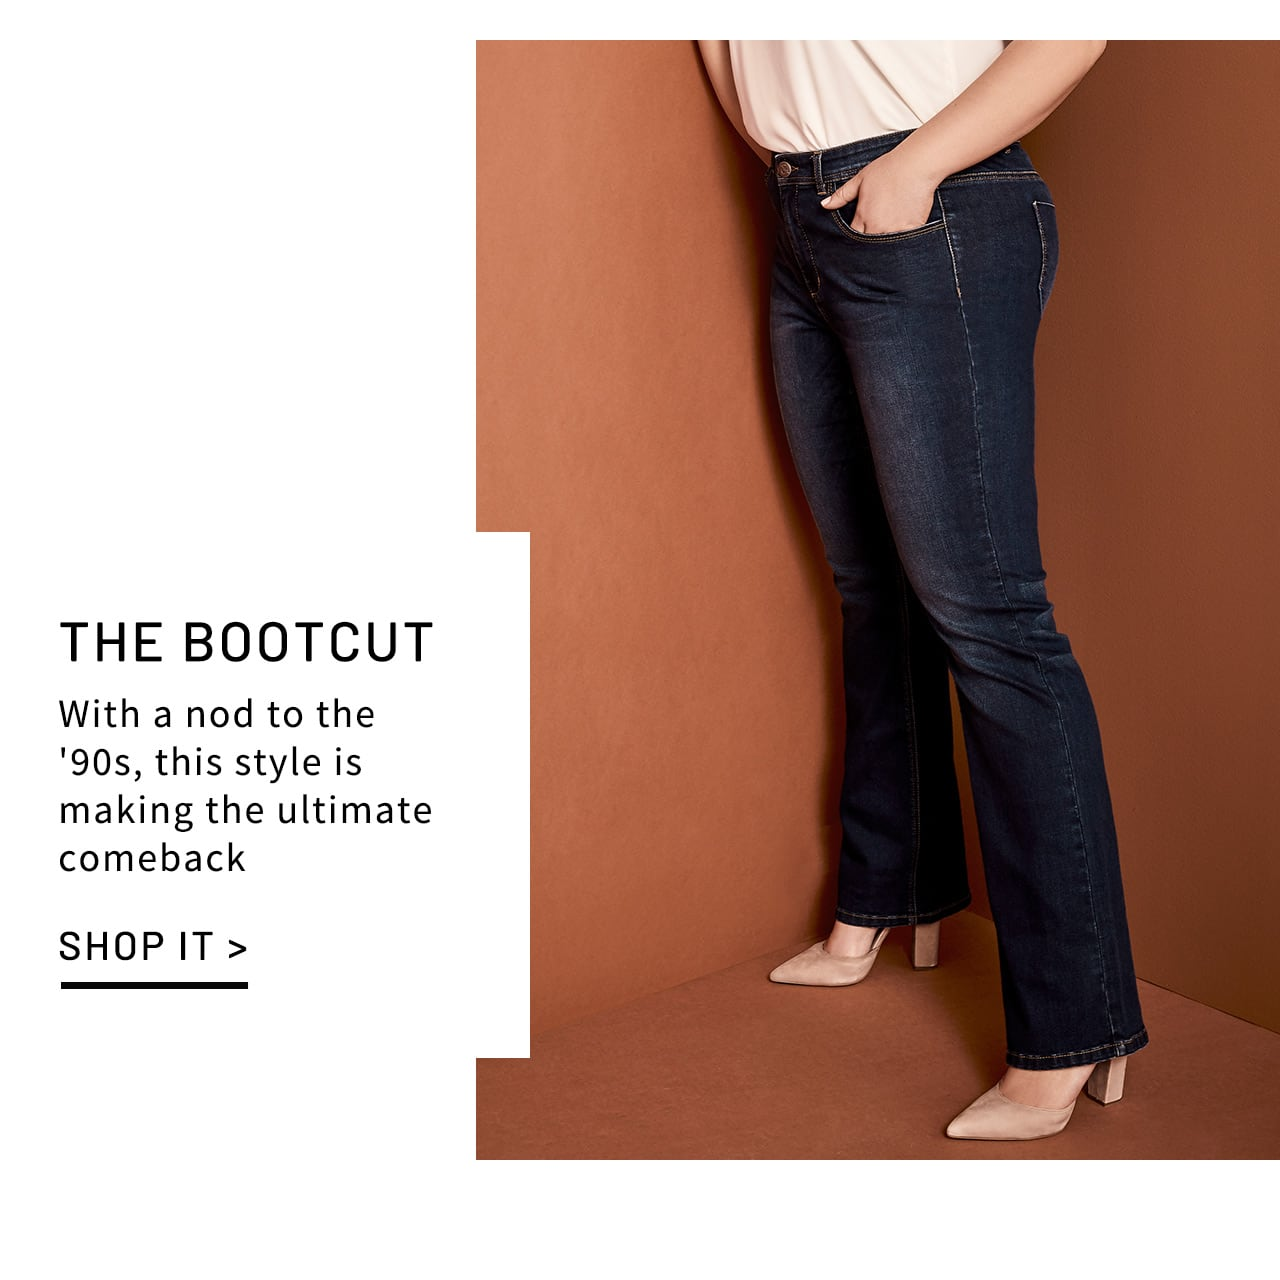 The Bootcut